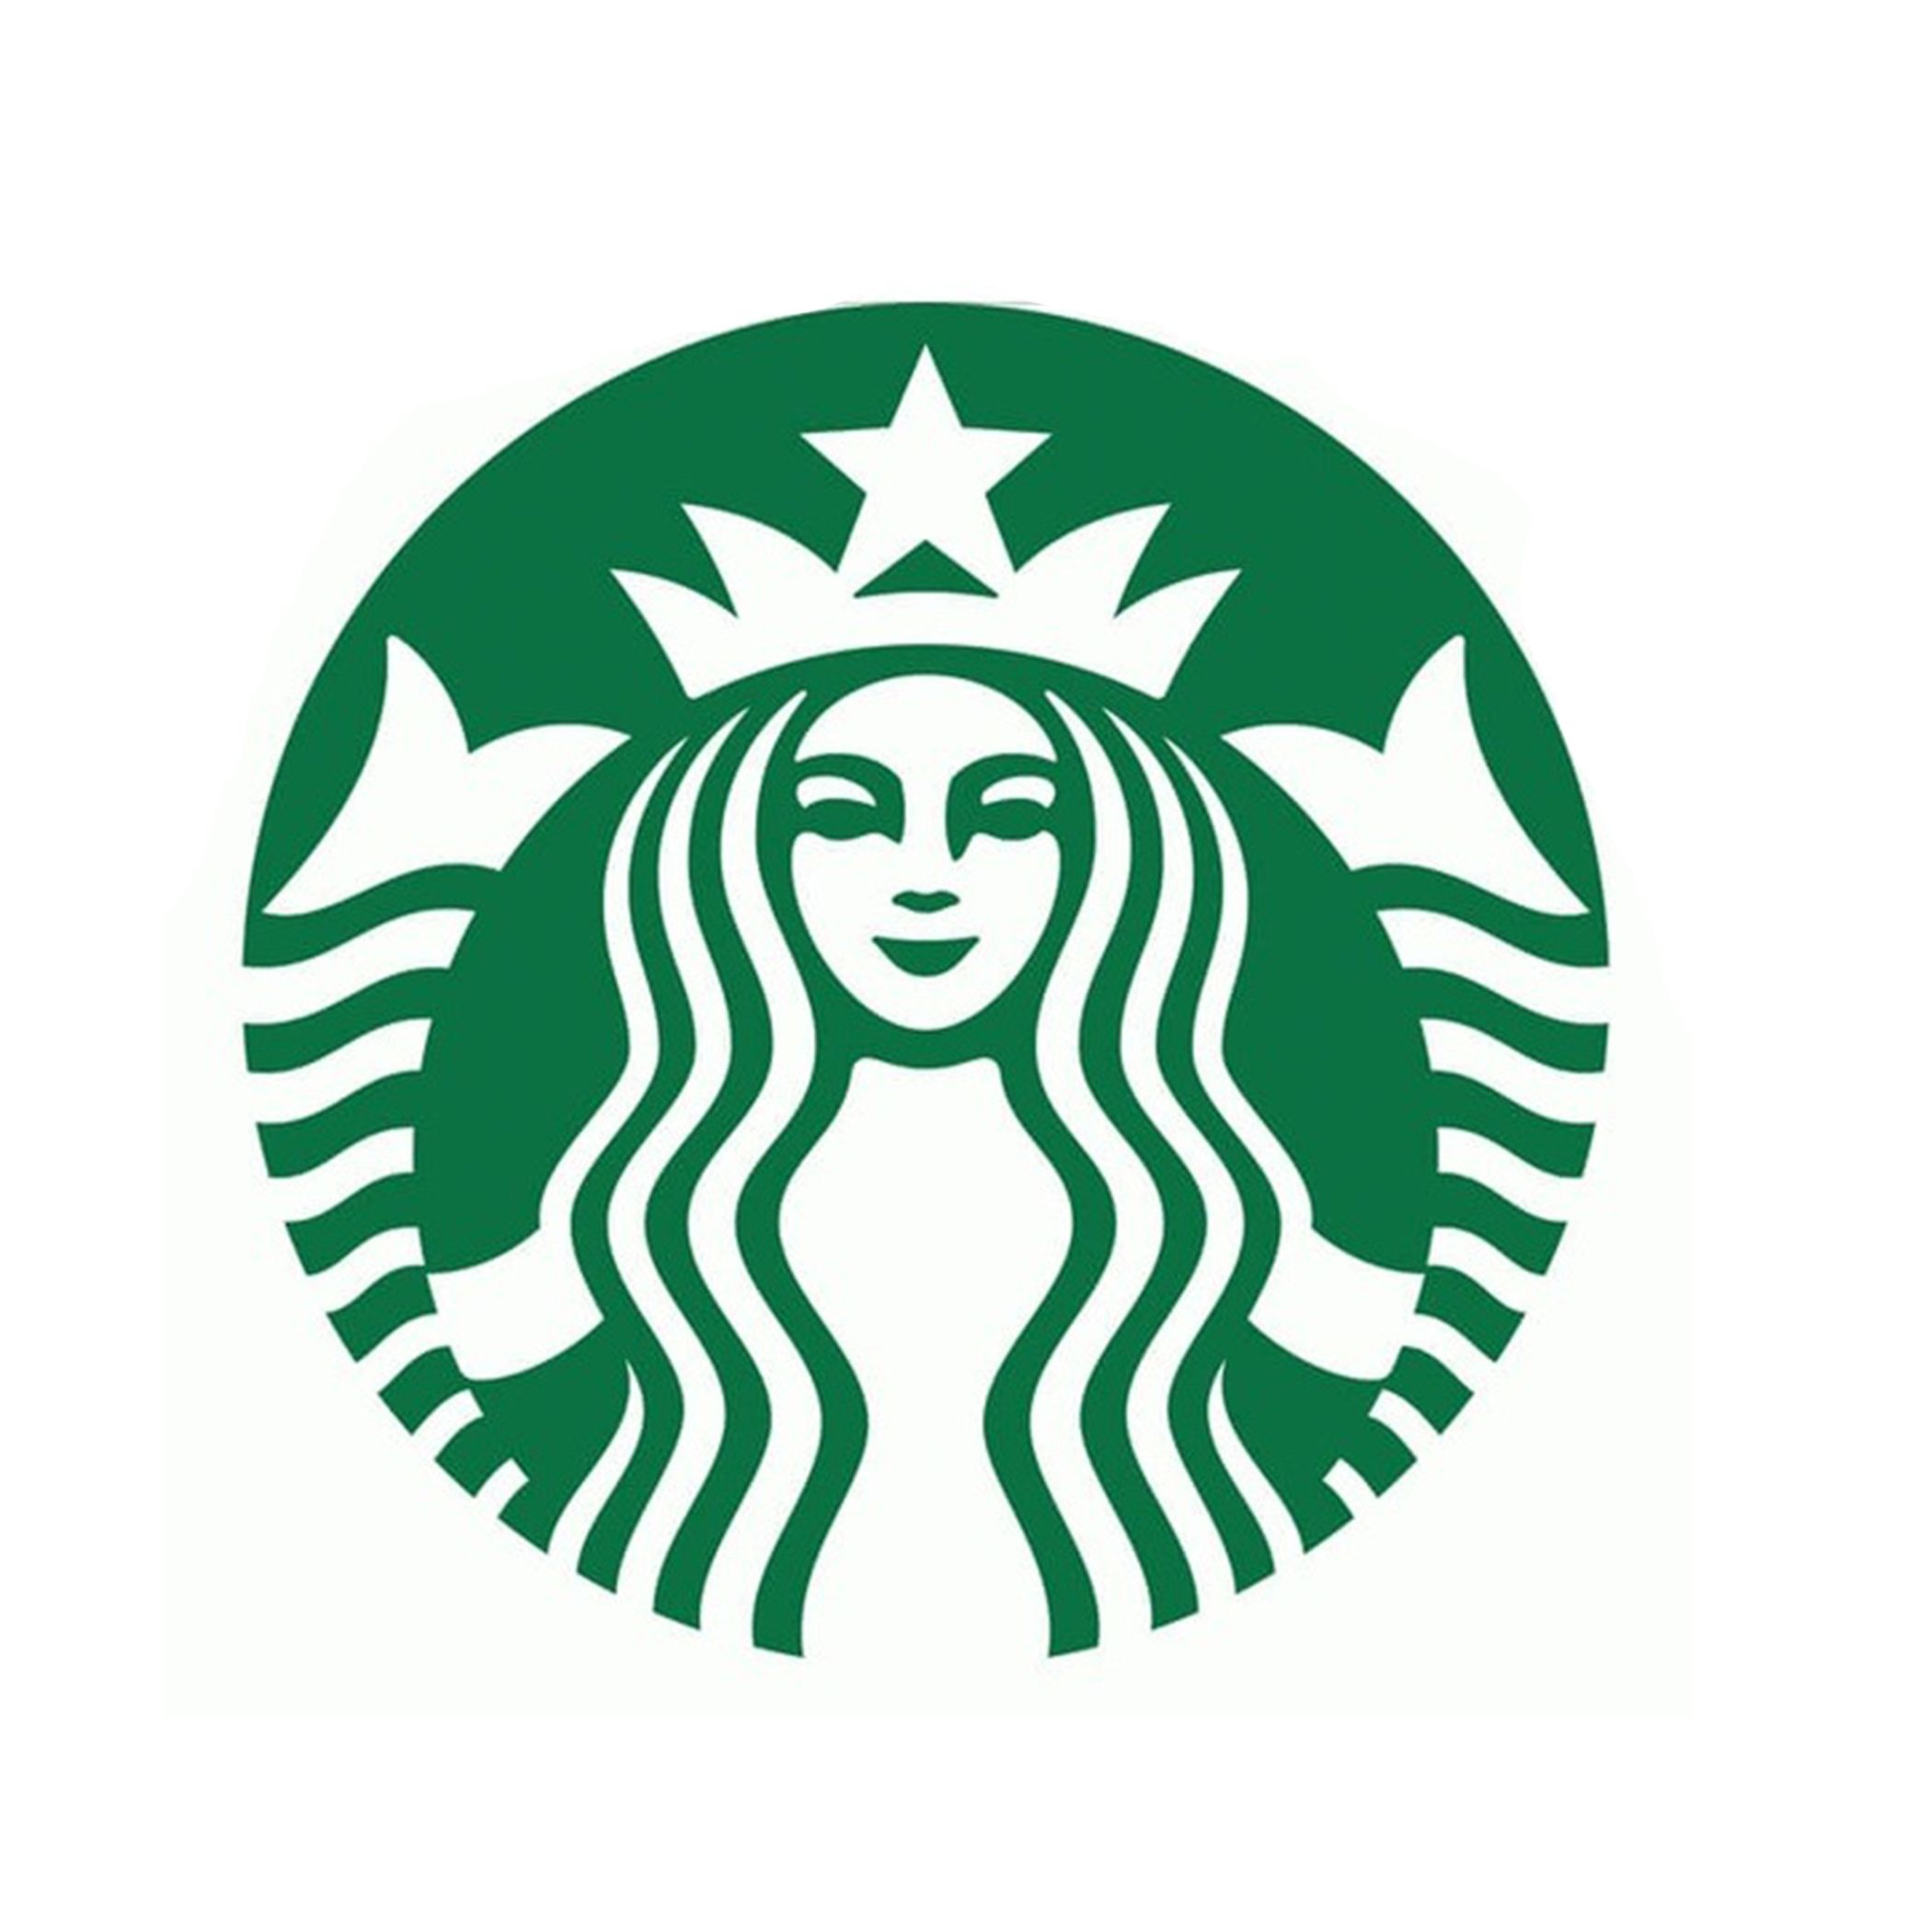 Starbucks Logo - Behind the Logo: Starbucks - Artitudes Design